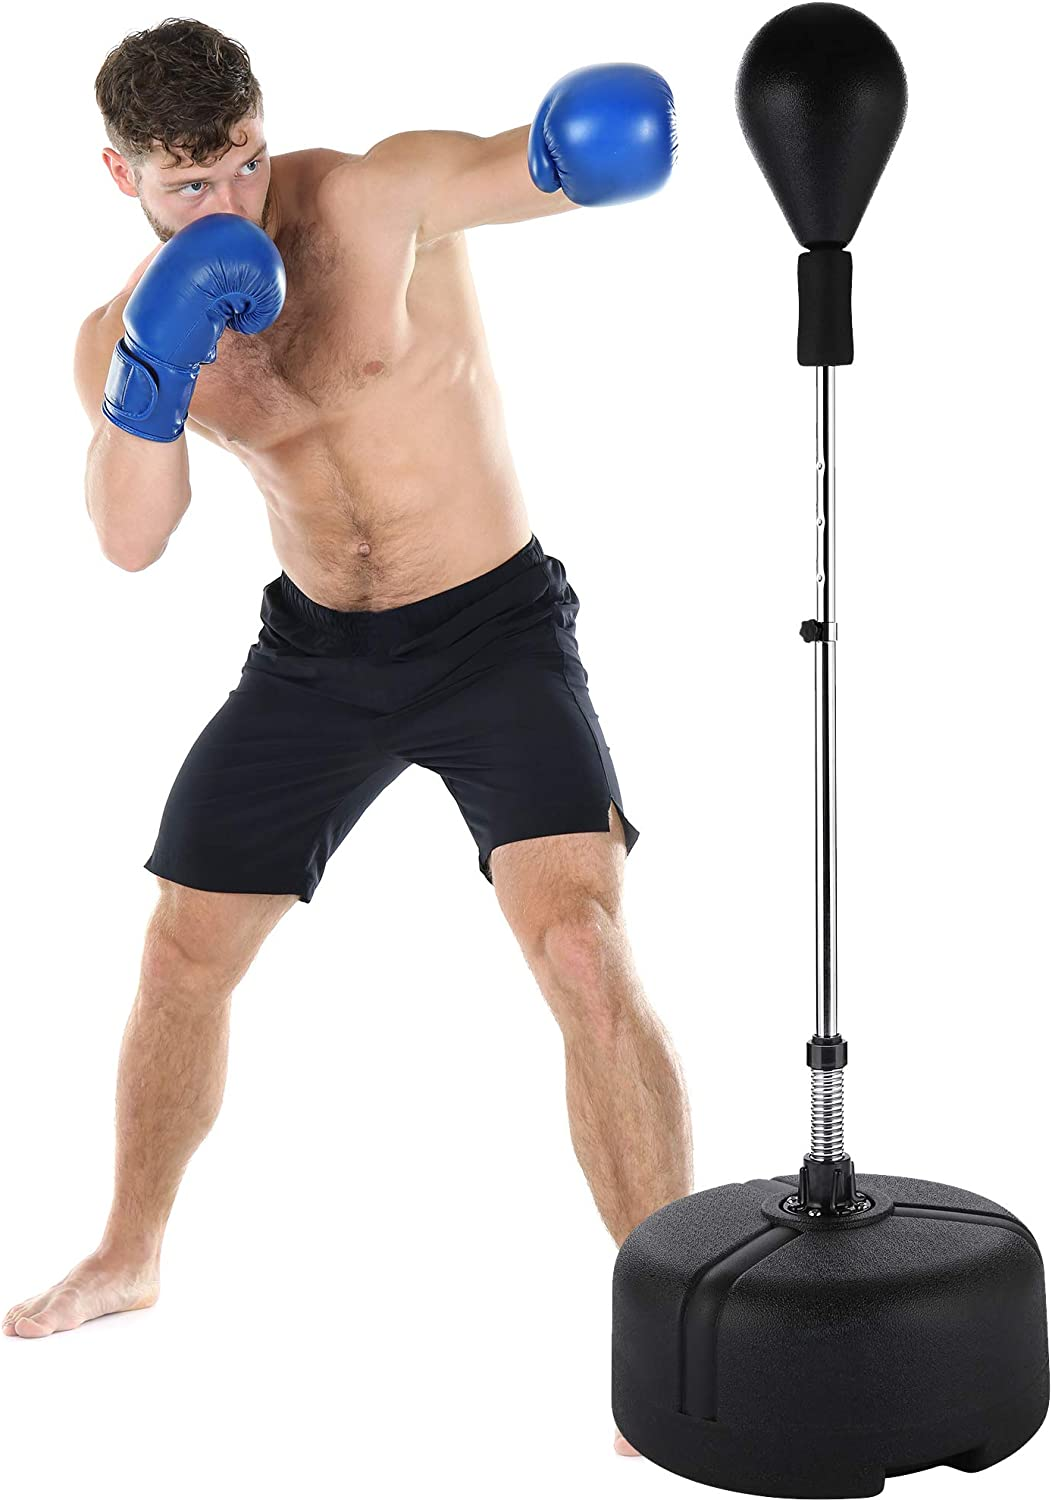 Perfect for Stress Relief//Fitness//Punch Training at Home PEXMOR Reflex Bag Height Adjustable for Adults /& Teens Speed Boxing Ball Freestanding Punching Bag with Stand Easy Assembly /& Durable